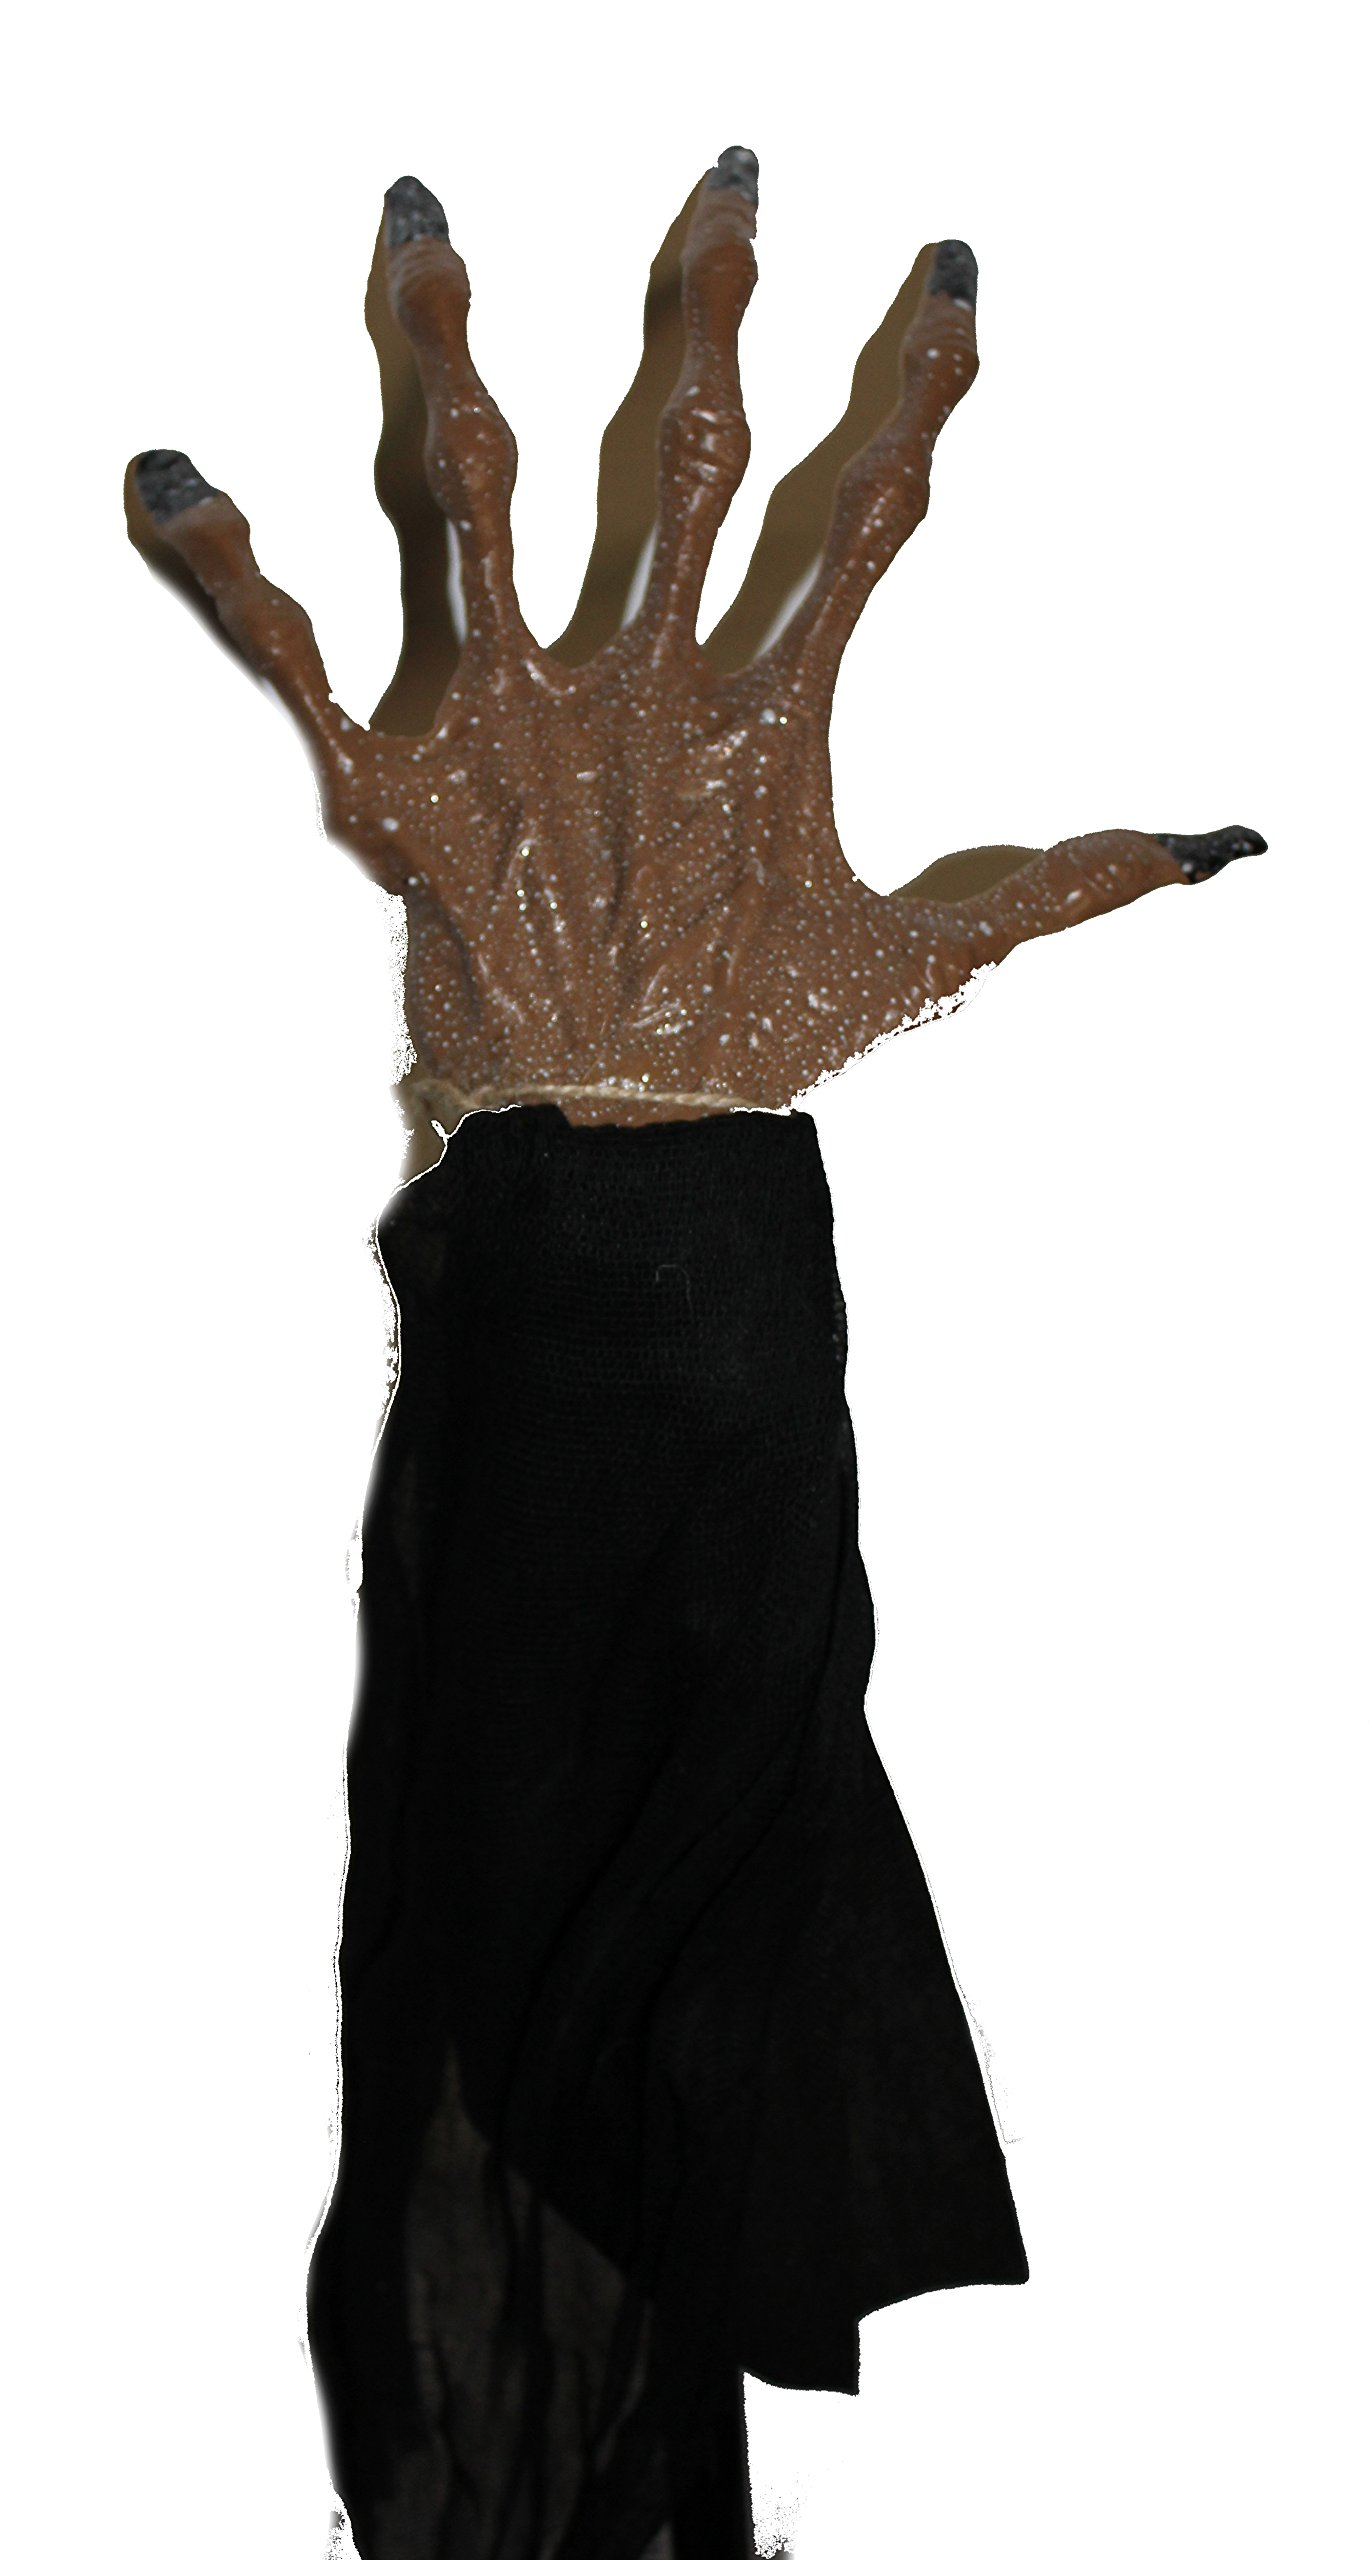 Scary 20'' Witch Arm and Hand Garden Stake, Yard Decoration, Props, Lawn Decorations and Accessories